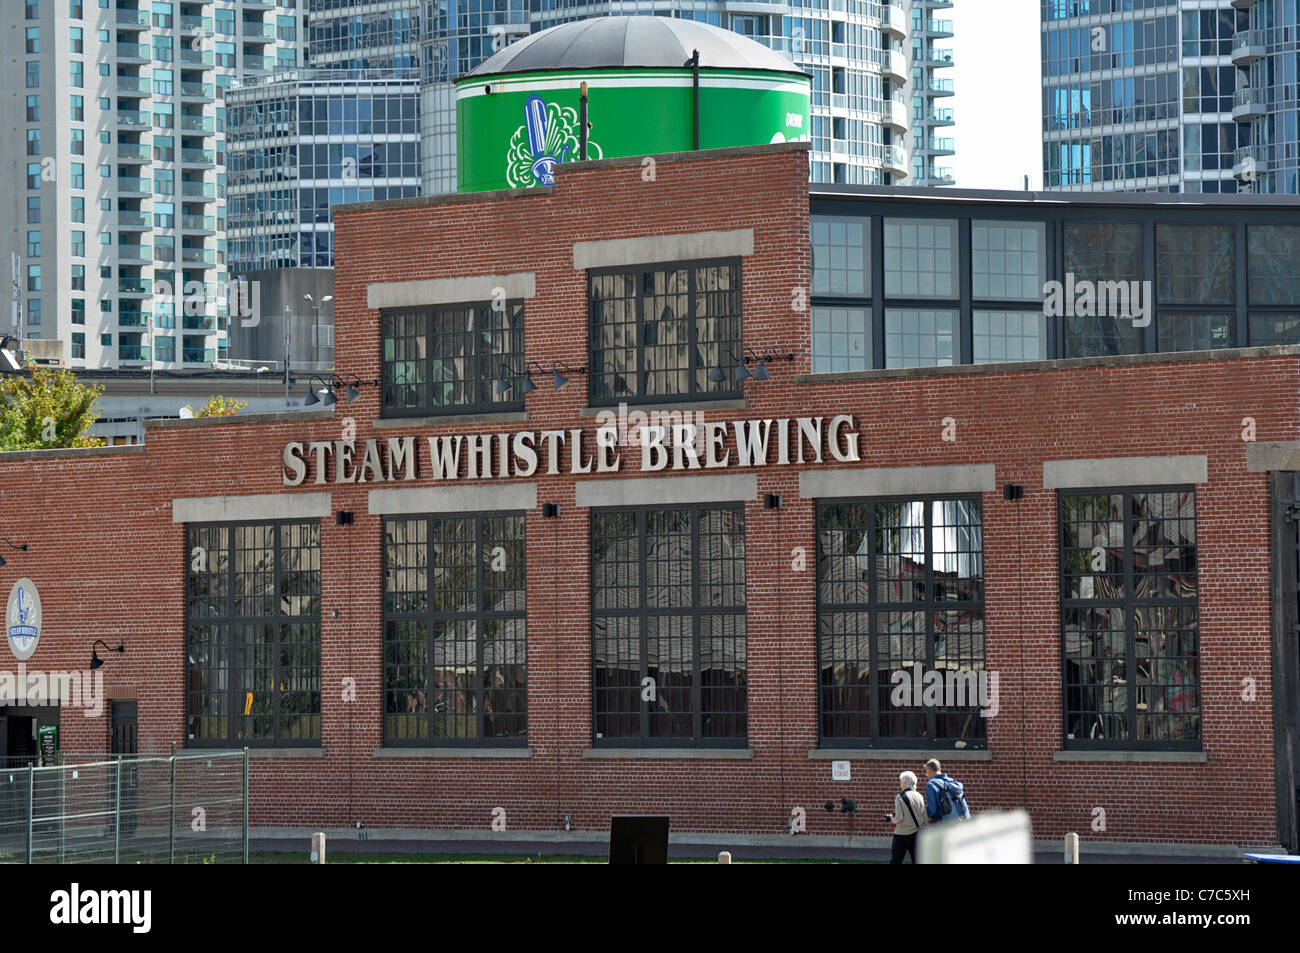 Steam Whistle Brewery, Toronto, Canada - Stock Image